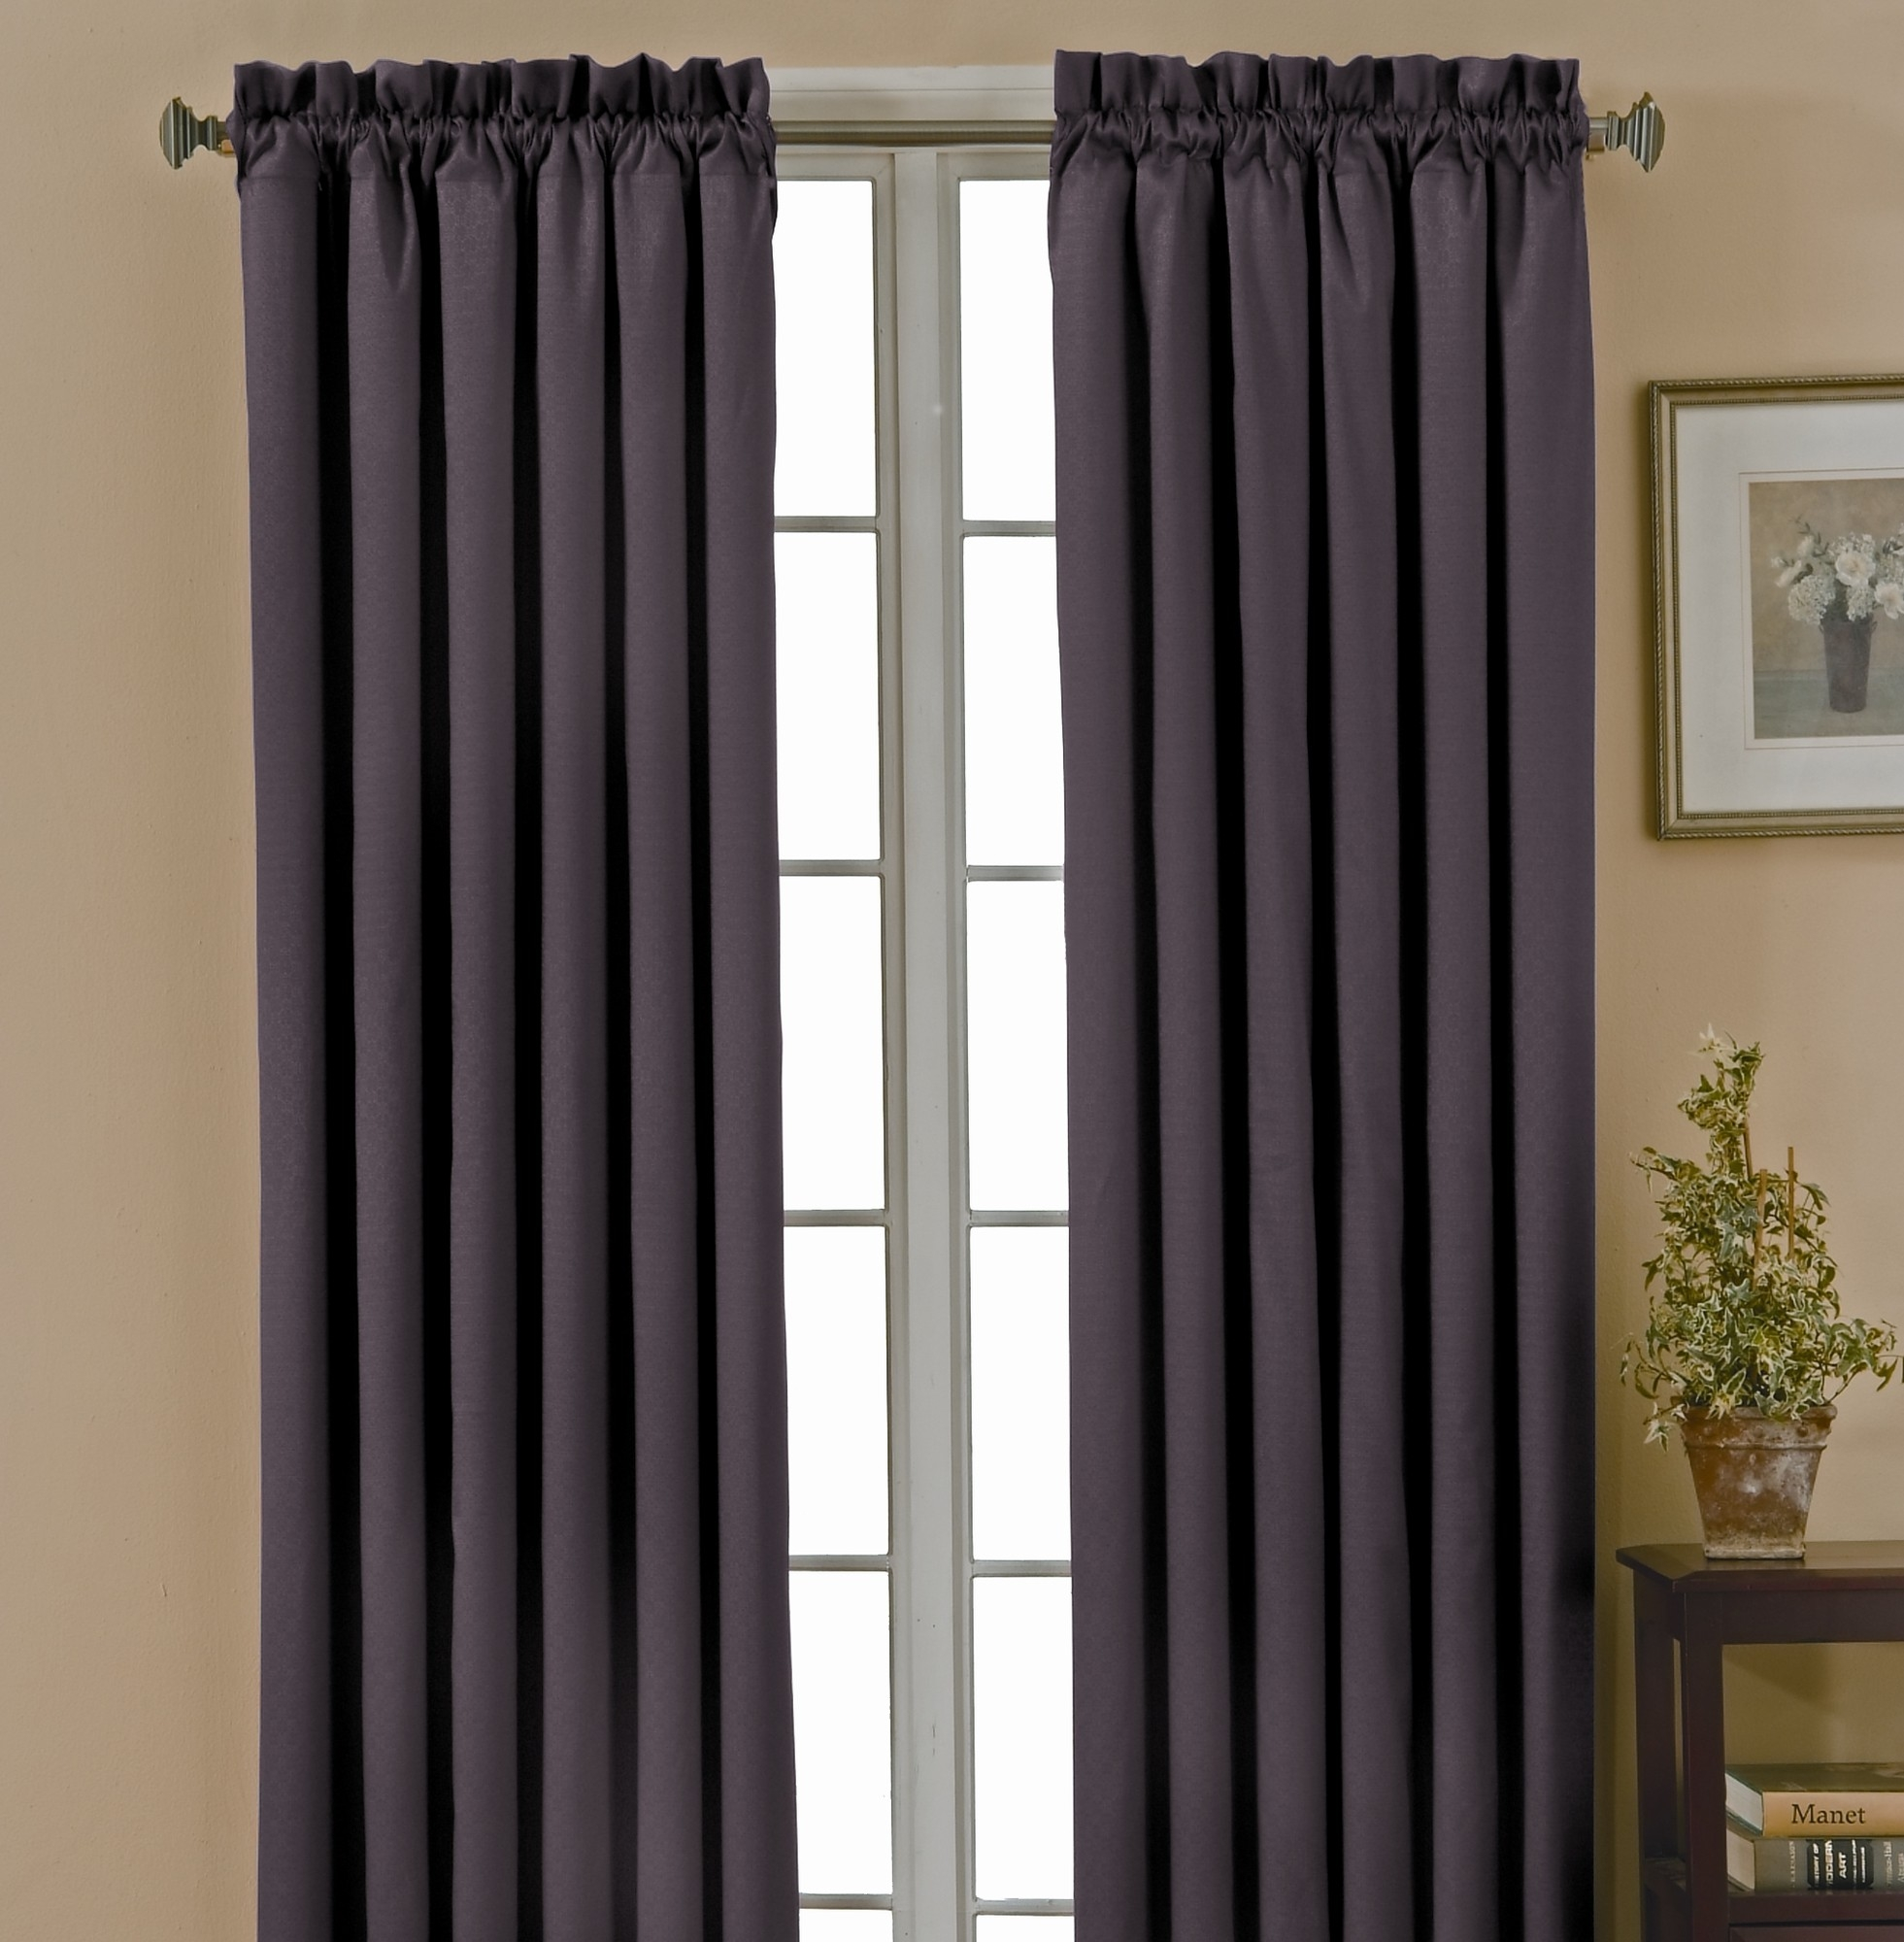 Blackout Curtain Also With A Thermal Blackout Curtains Also With A In Thick Grey Curtains (View 11 of 15)